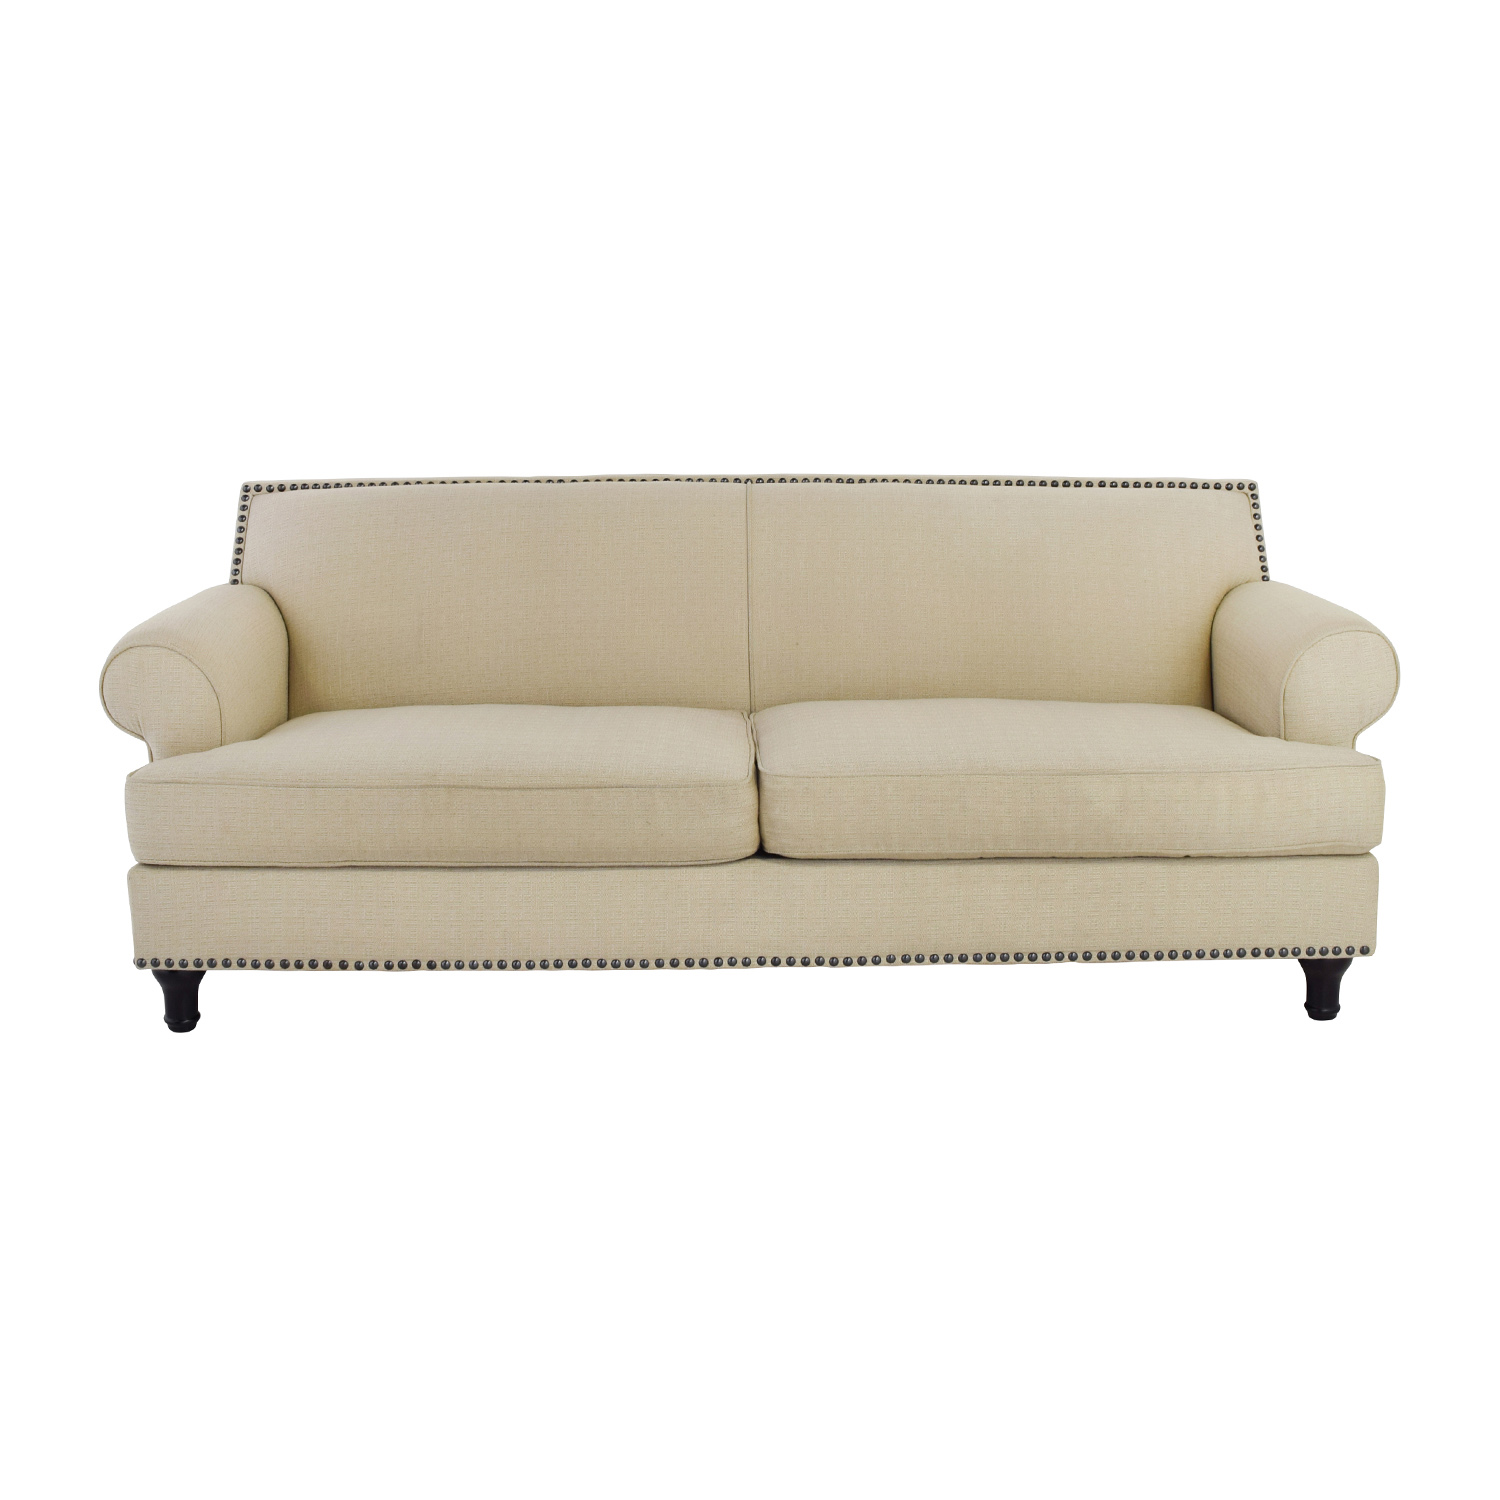 Pier 1 Pier 1 Carmen Tan Couch with Studs on sale